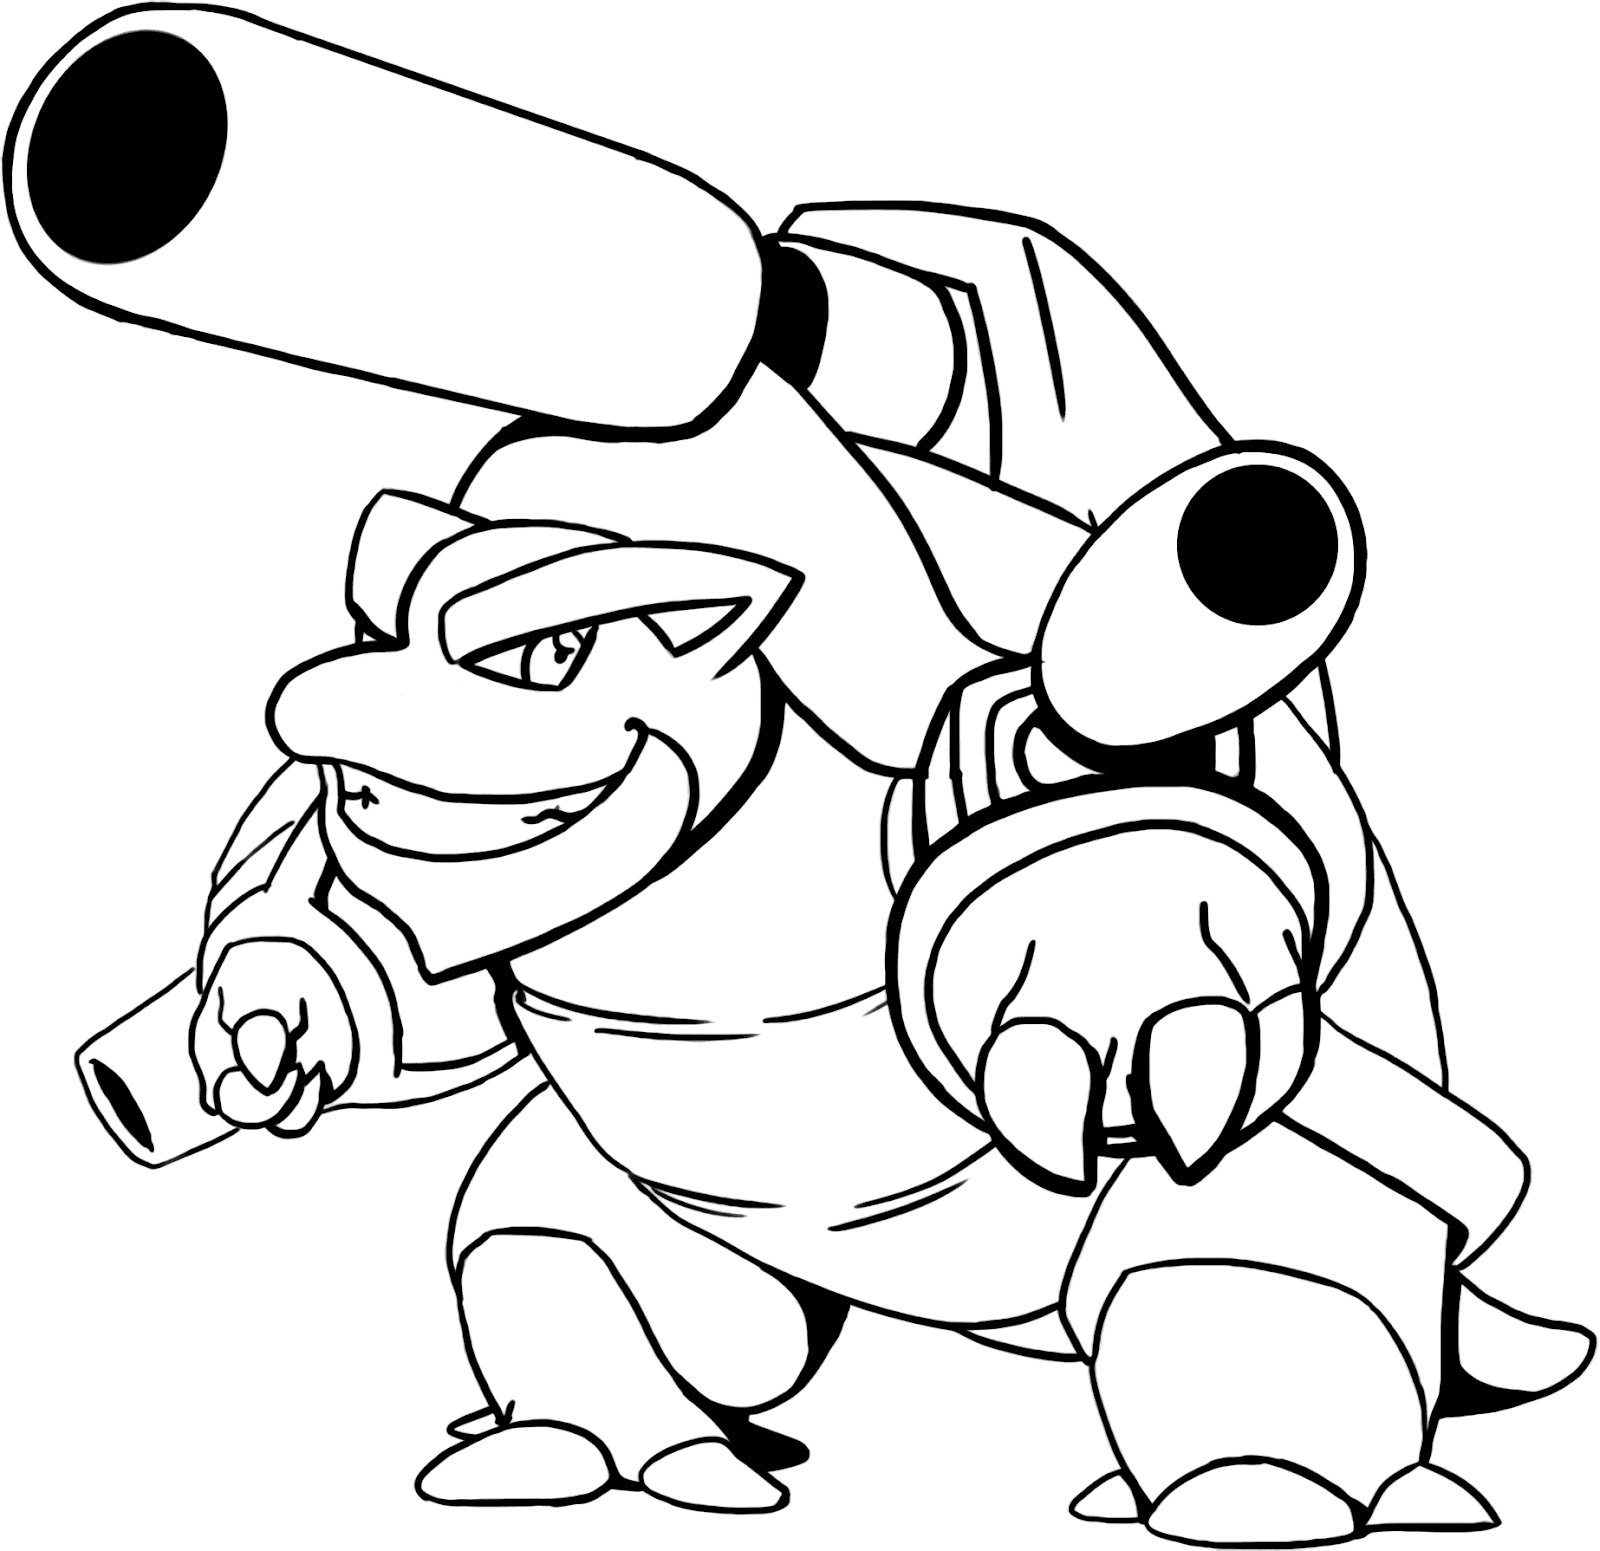 blastoise coloring pages blastoise drawing at getdrawings free download pages blastoise coloring